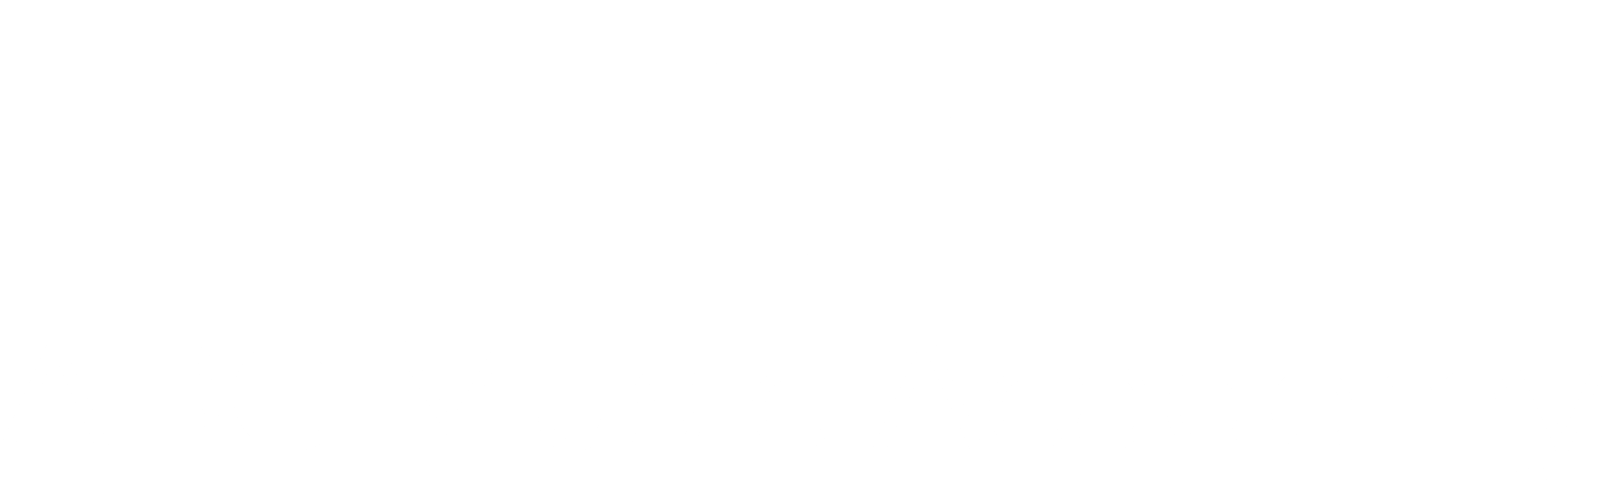 ABC-Music-Academy-logo-reworked